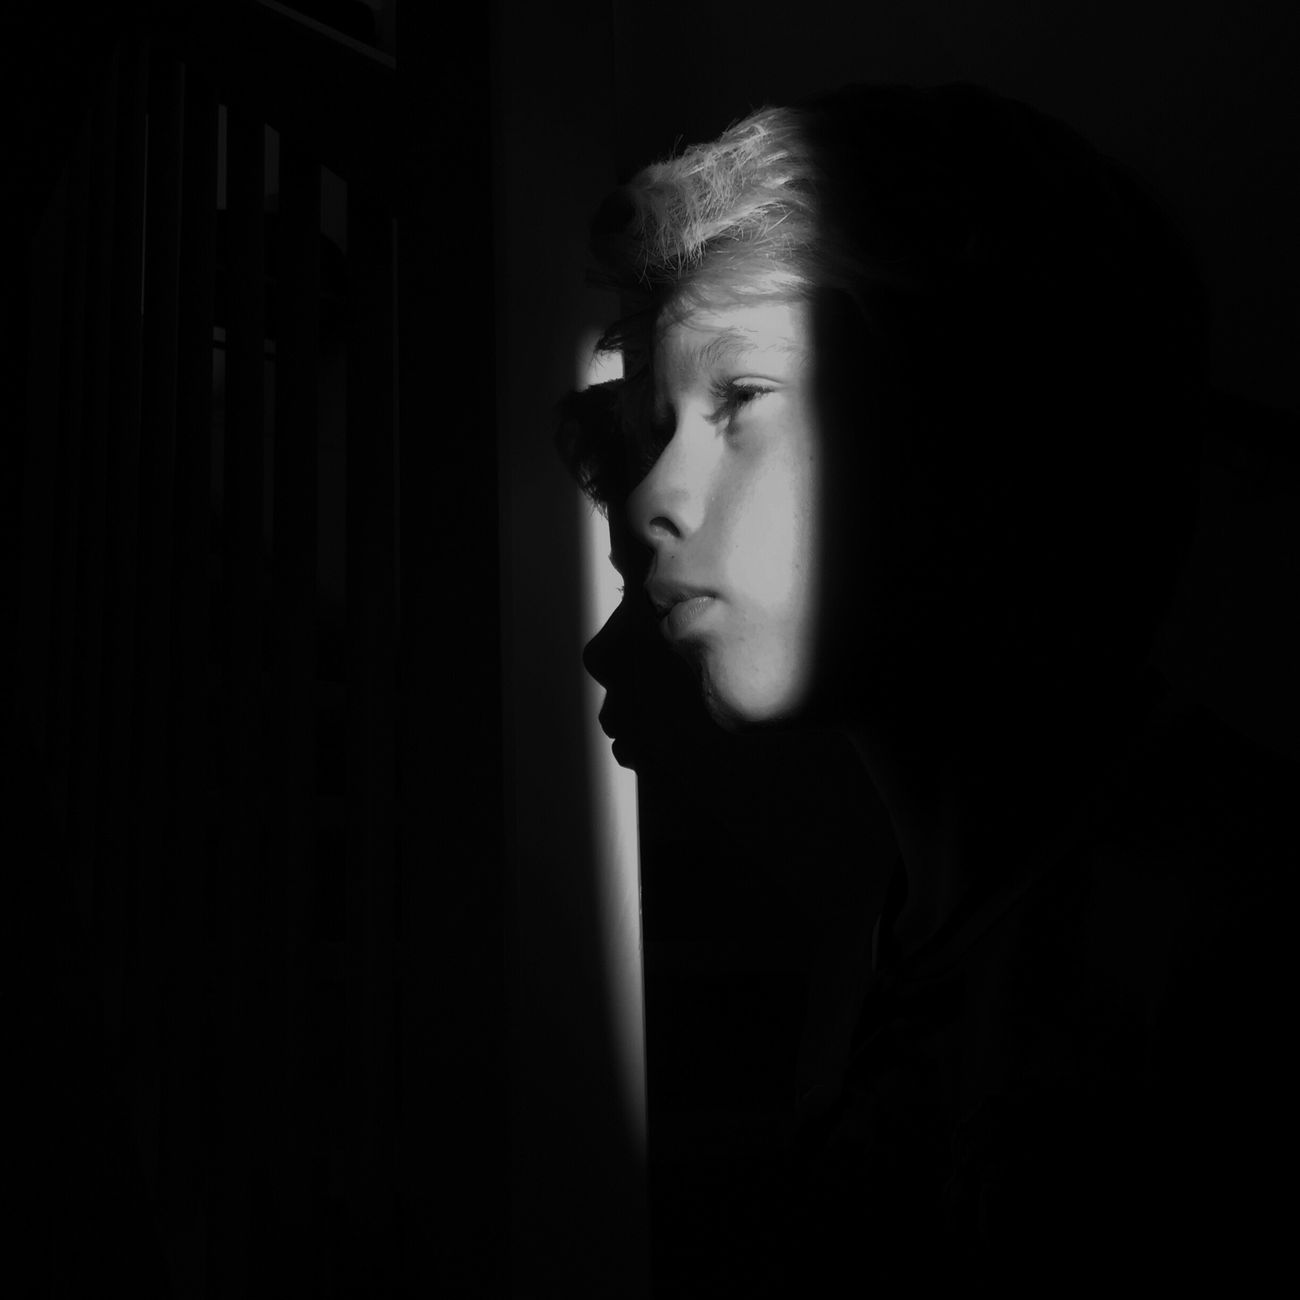 Remain in Light. Monoart_ampt Blackandwhite Photography Shootermag